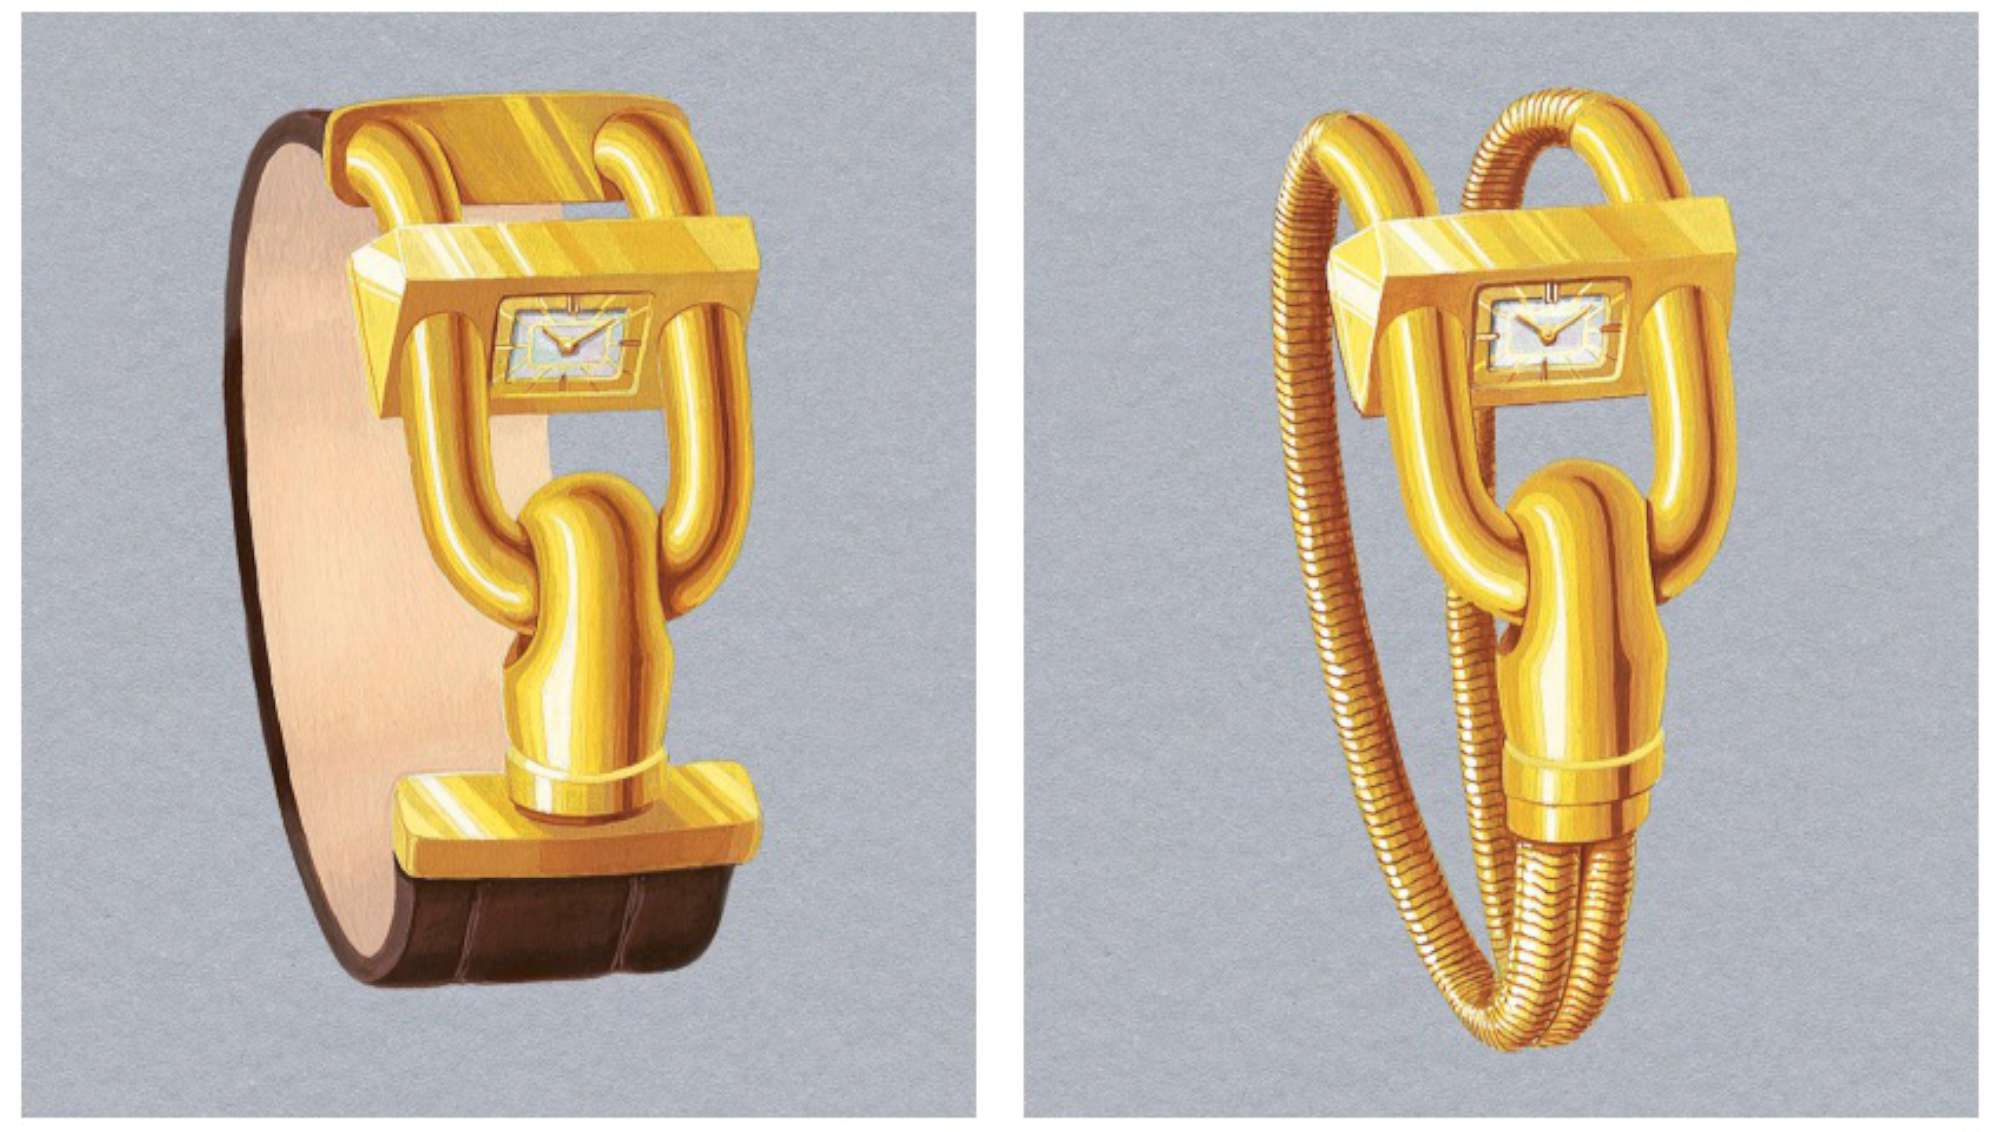 Design drawing of the new Cadenas series of bracelet-watches, showing the Cadenas on the left, and the Cadenas Bracelet Or on the right